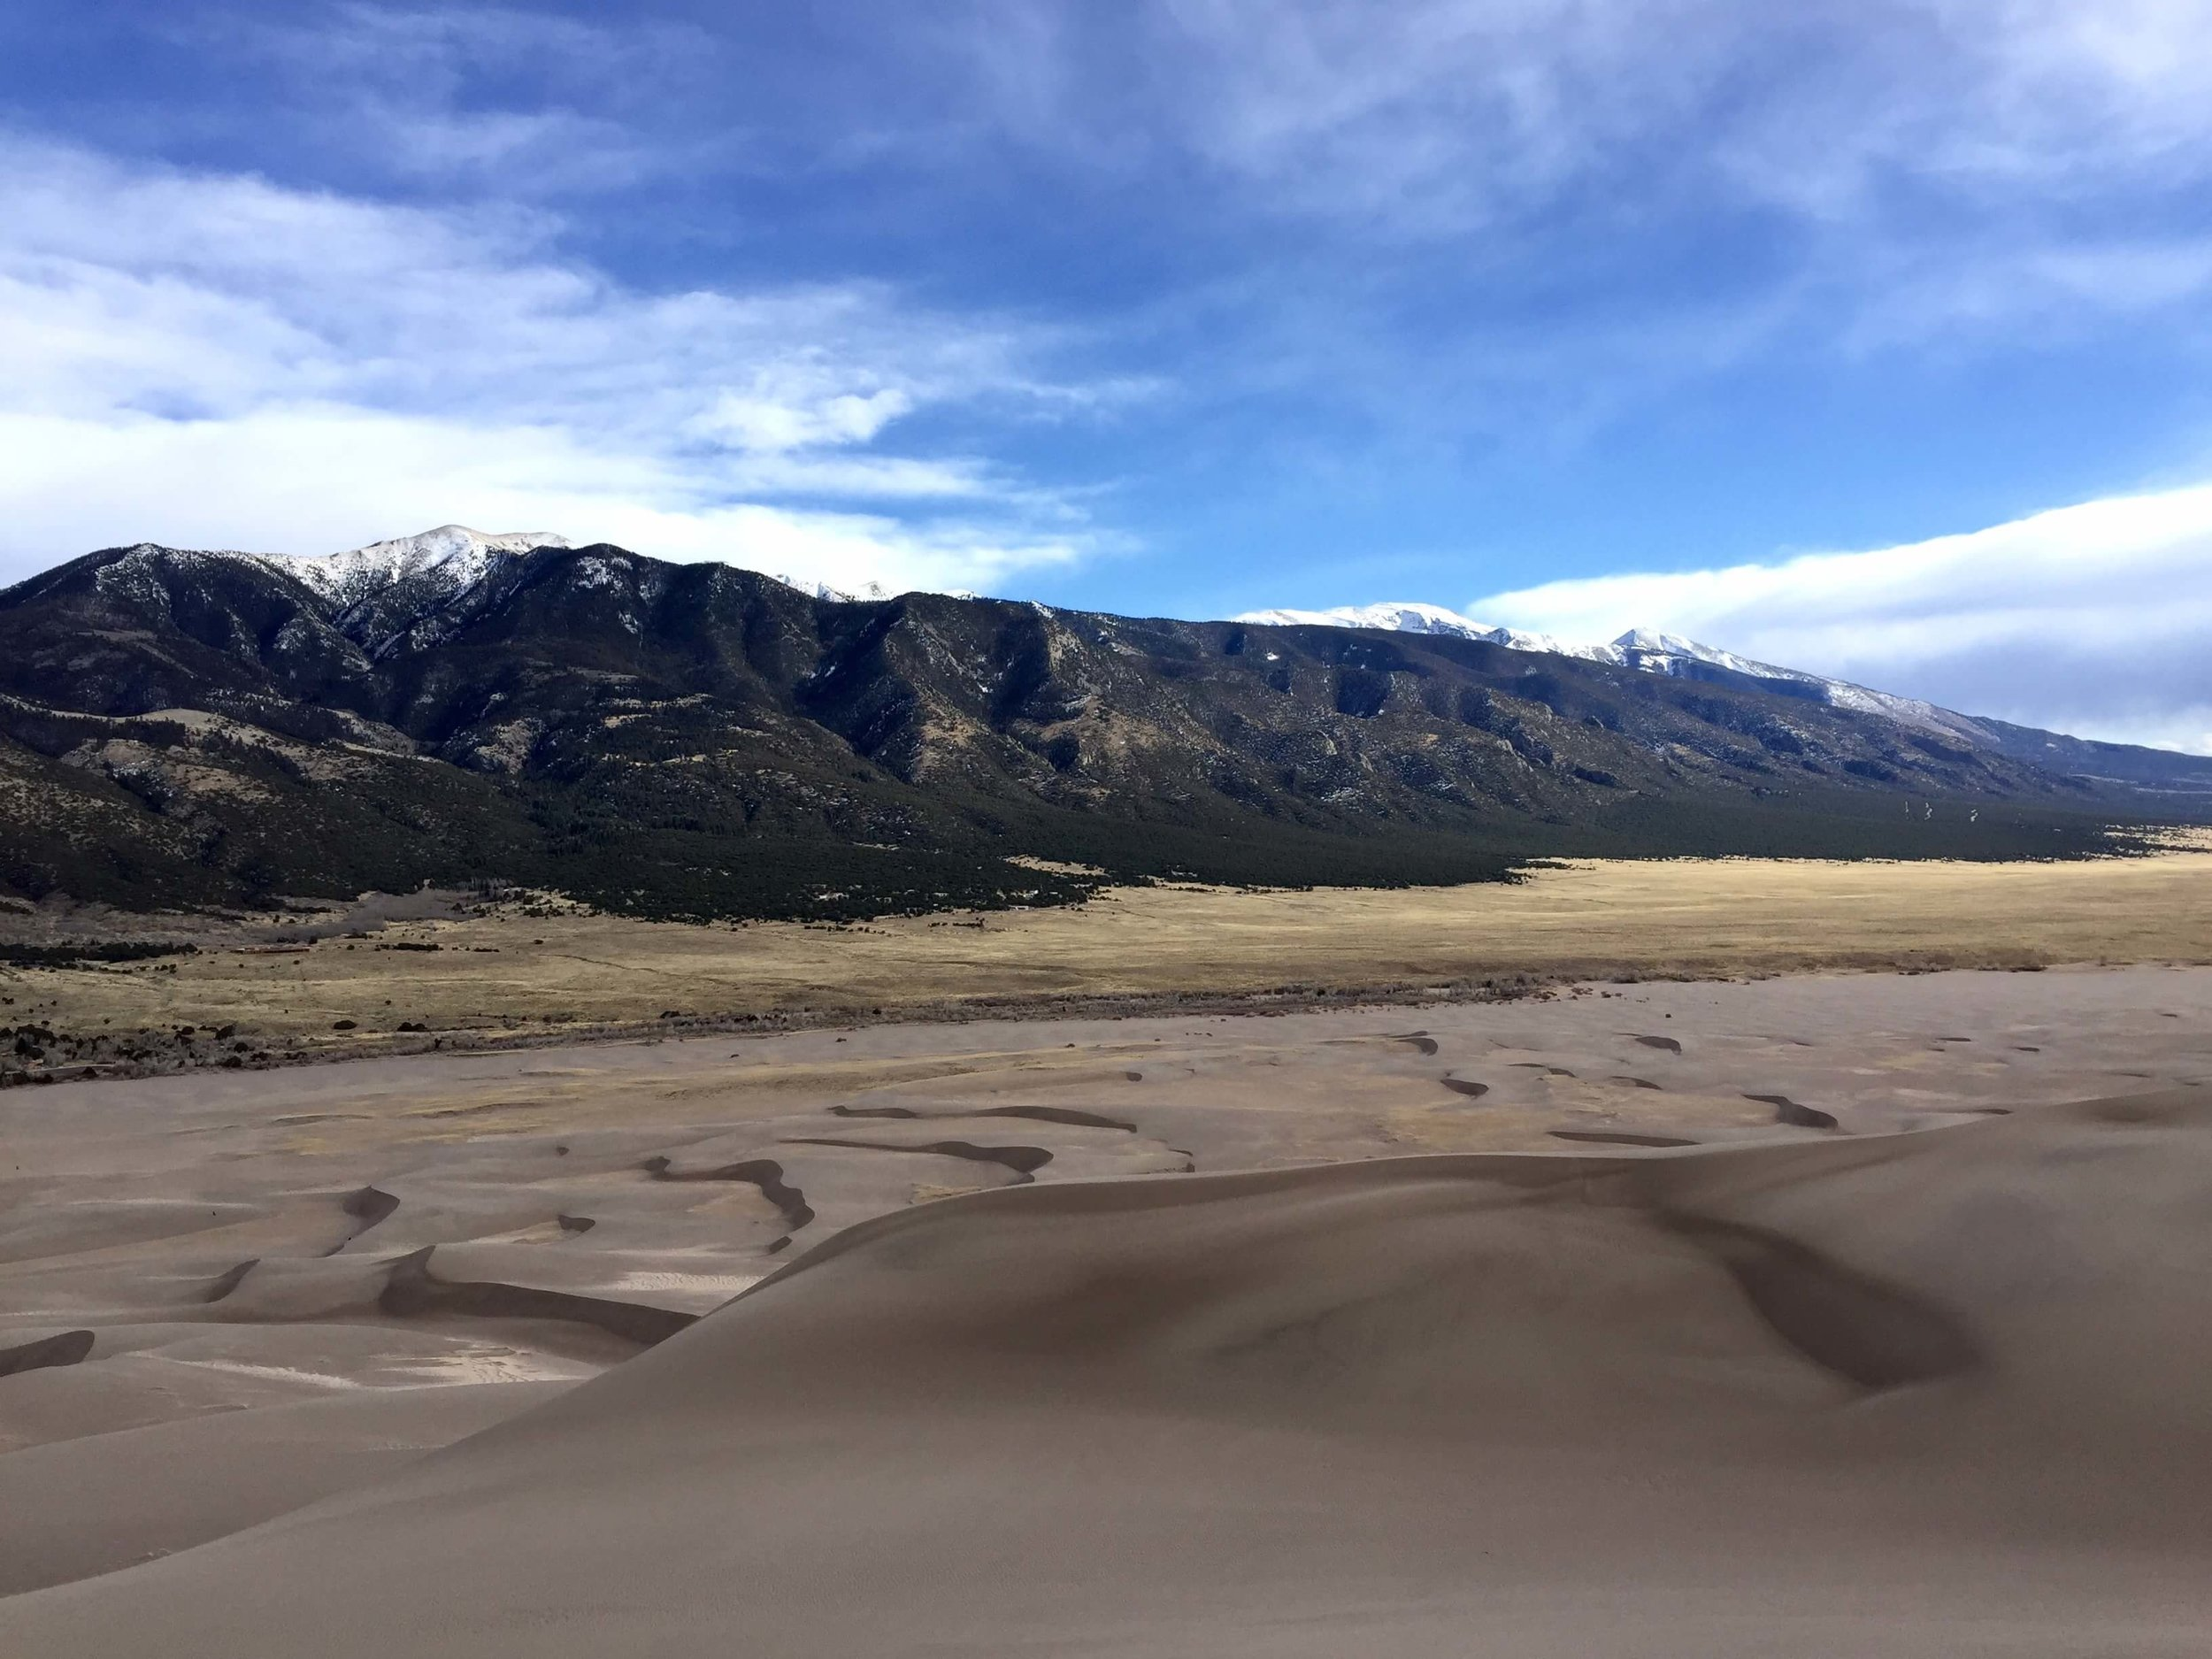 Where valley meets dune and mountain at the Great Sand Dunes National Park.